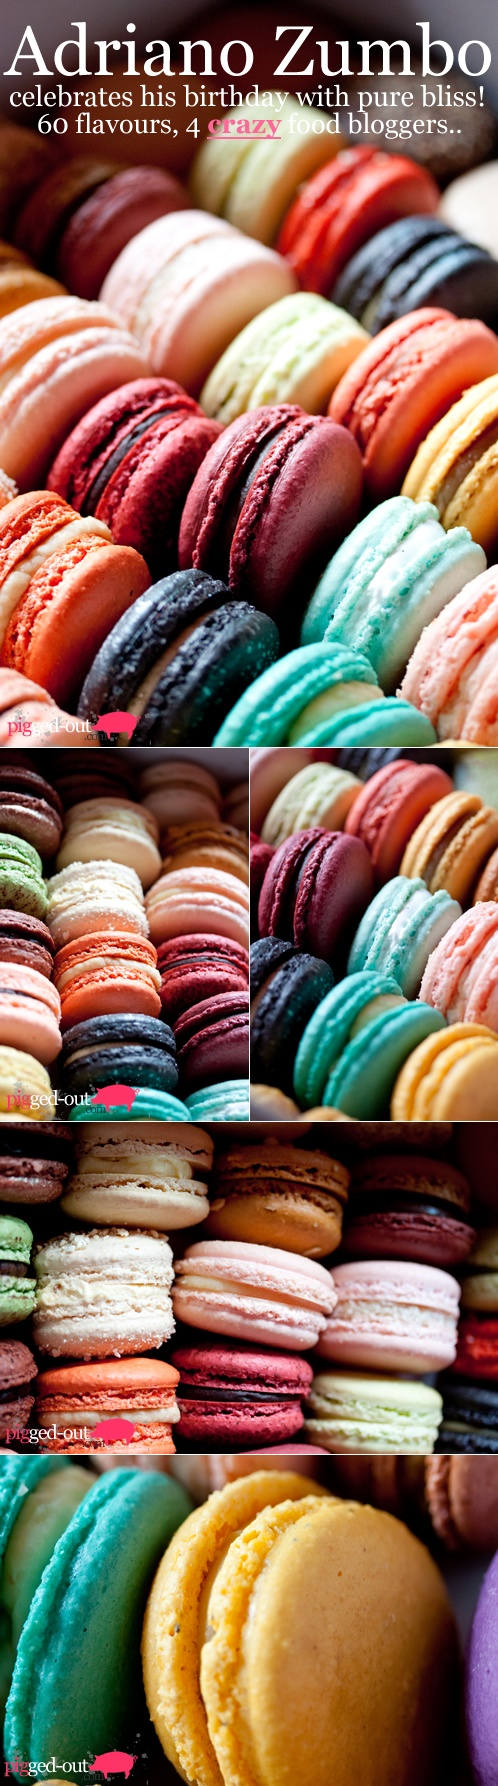 48 Flavors of Macaroons!